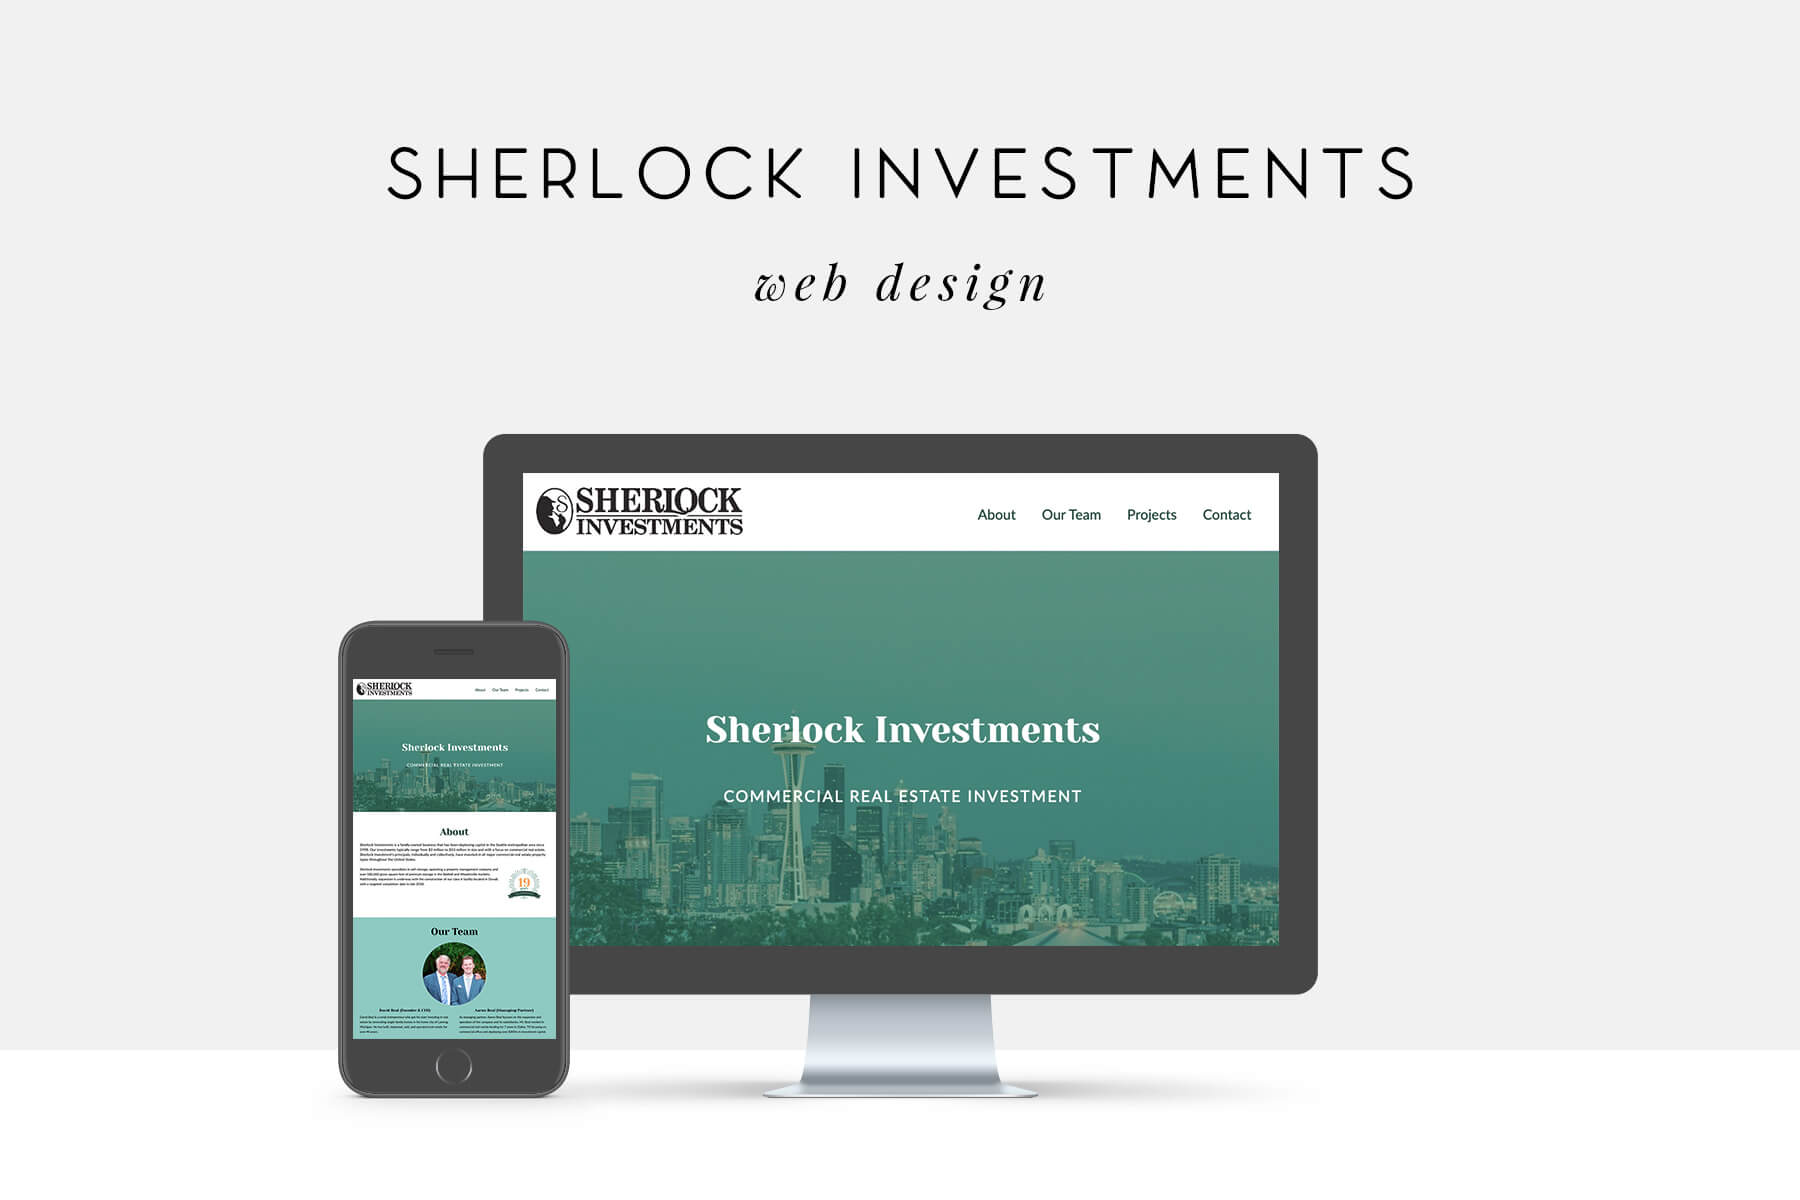 NS-Design-Sherlock Investments-Responsive-Web-Design